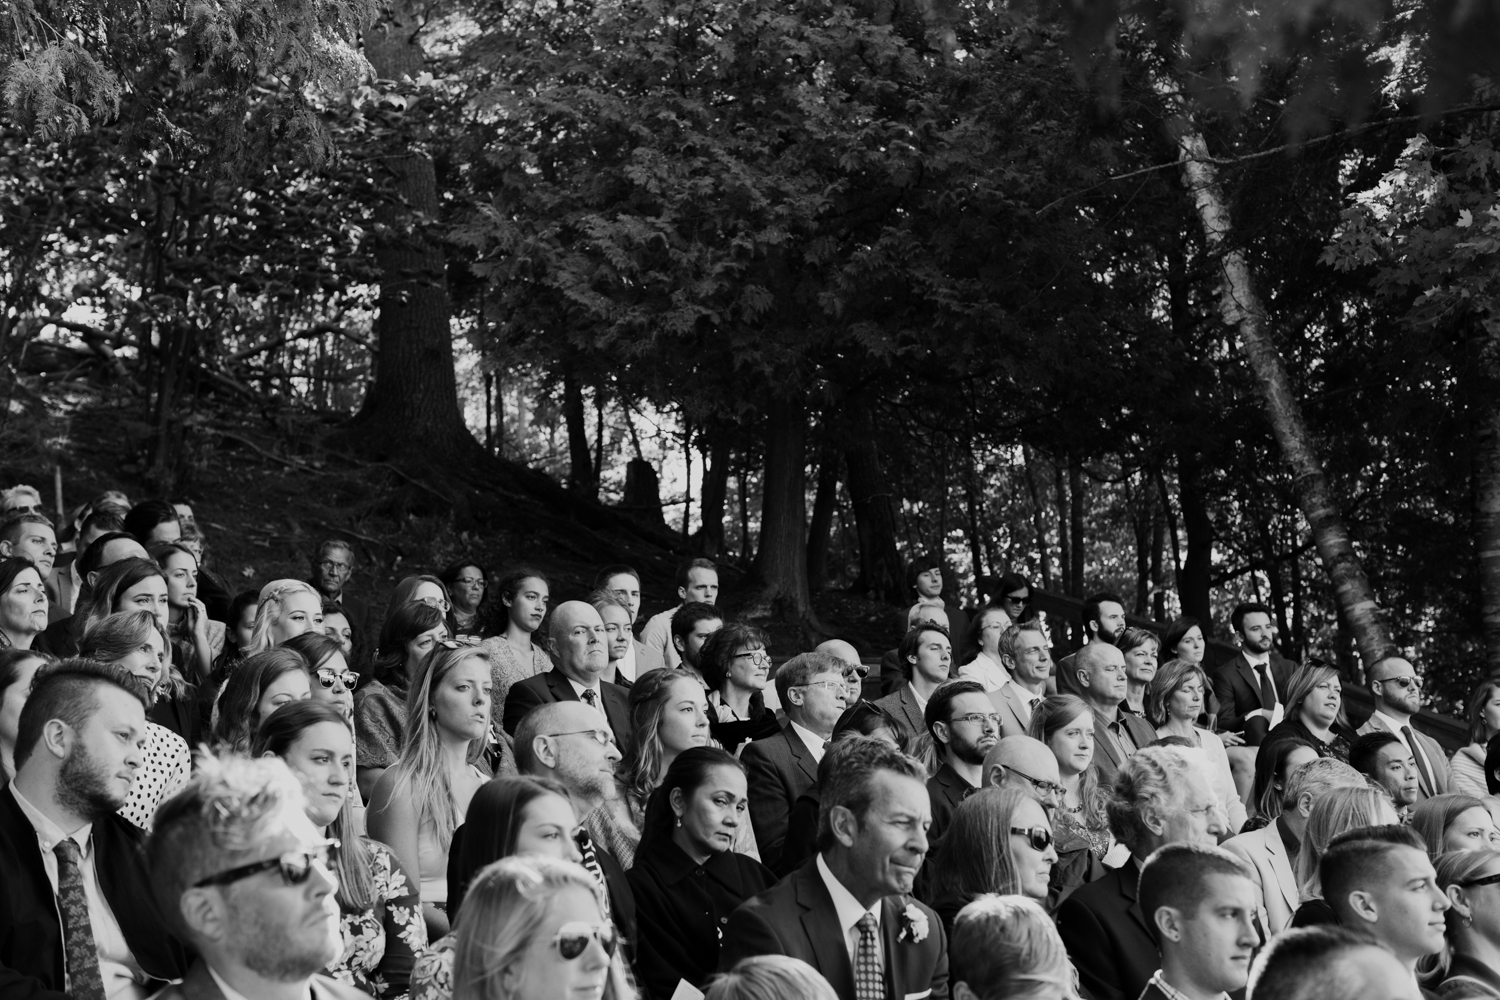 Wedding guests seating during ceremony. Huntsville photographer